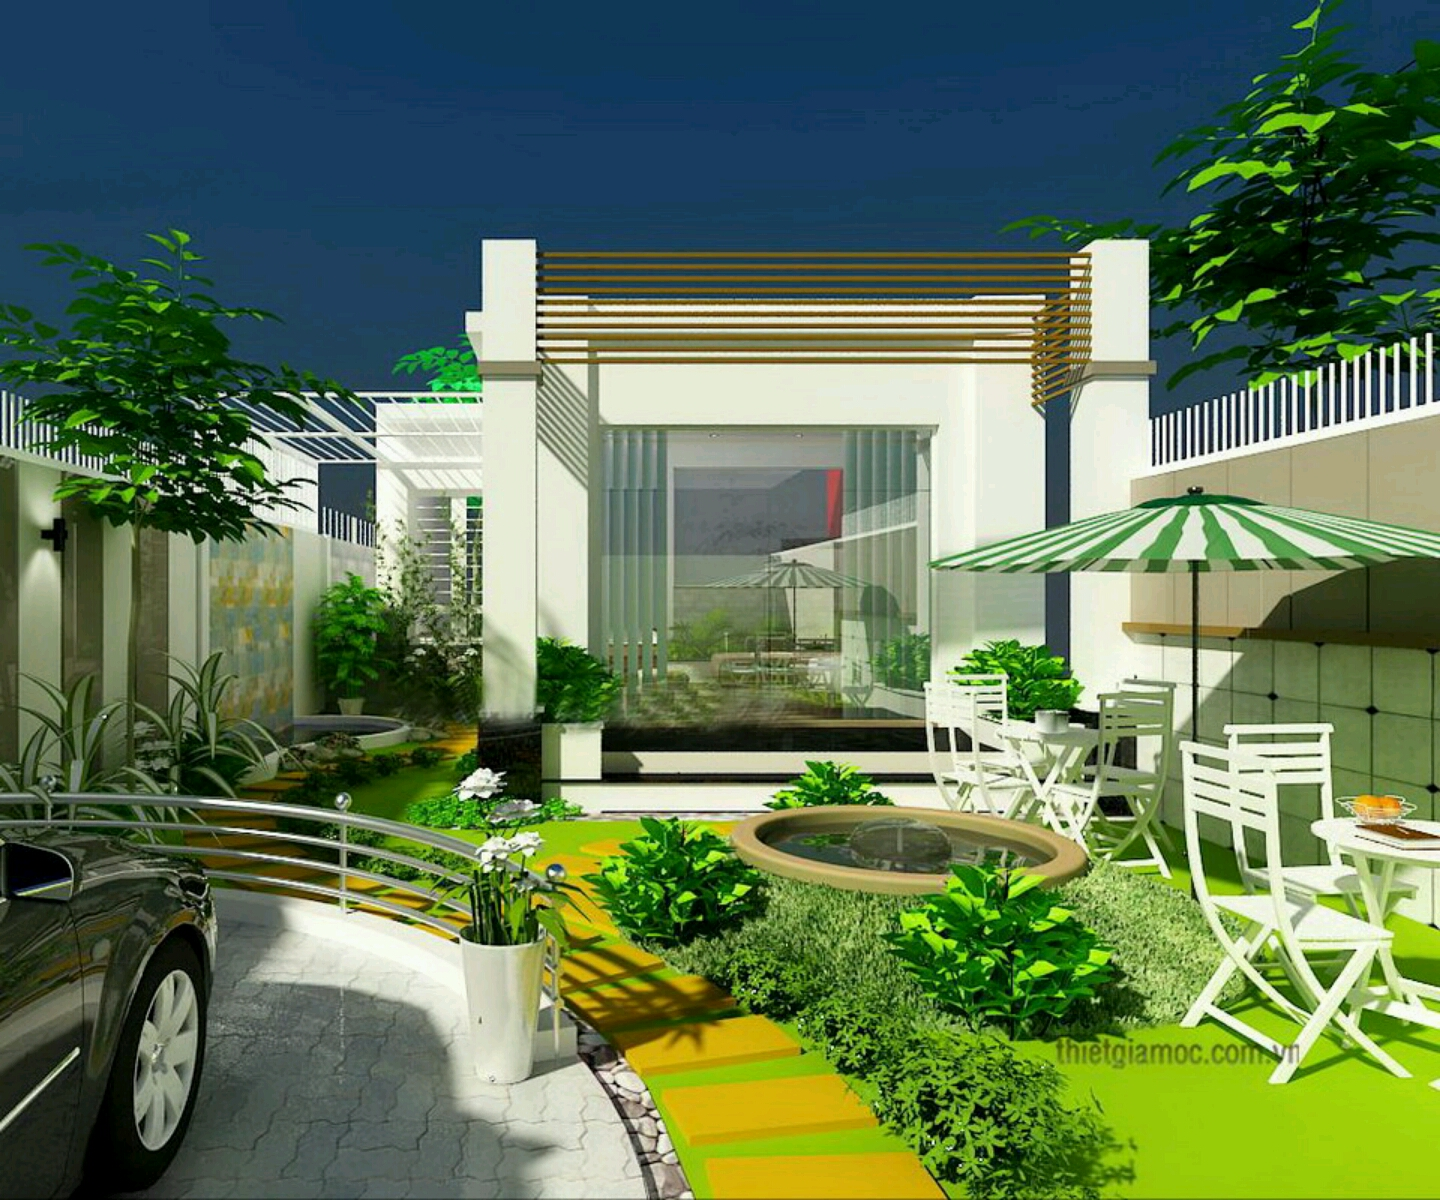 Home Design Ideas Contemporary: Modern Homes Beautiful Garden Designs Ideas.